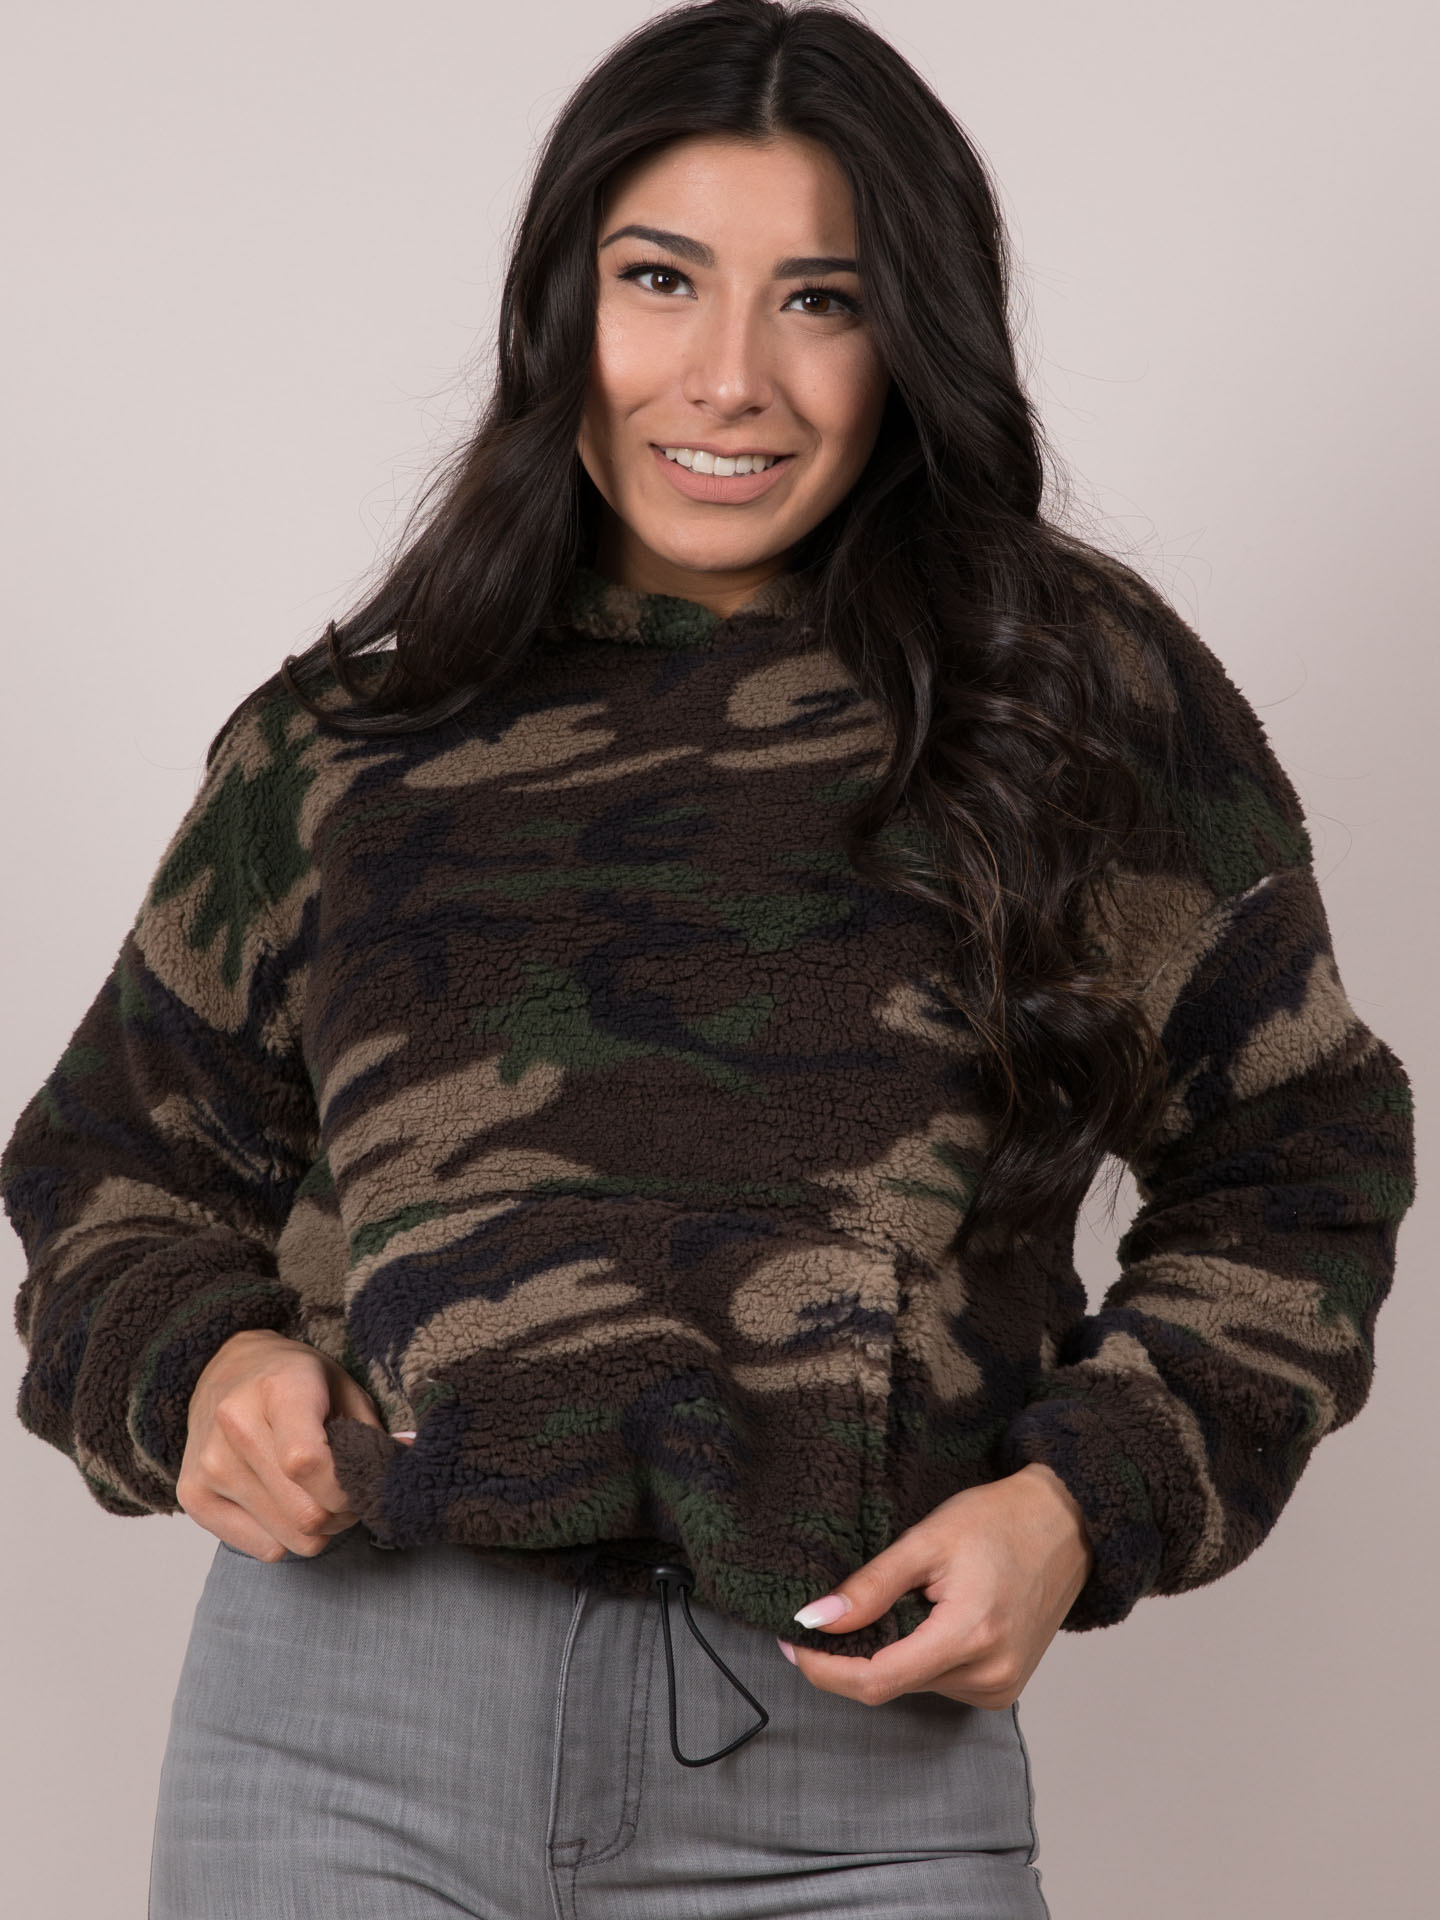 Camo Hoodie Friends Camo Pullover